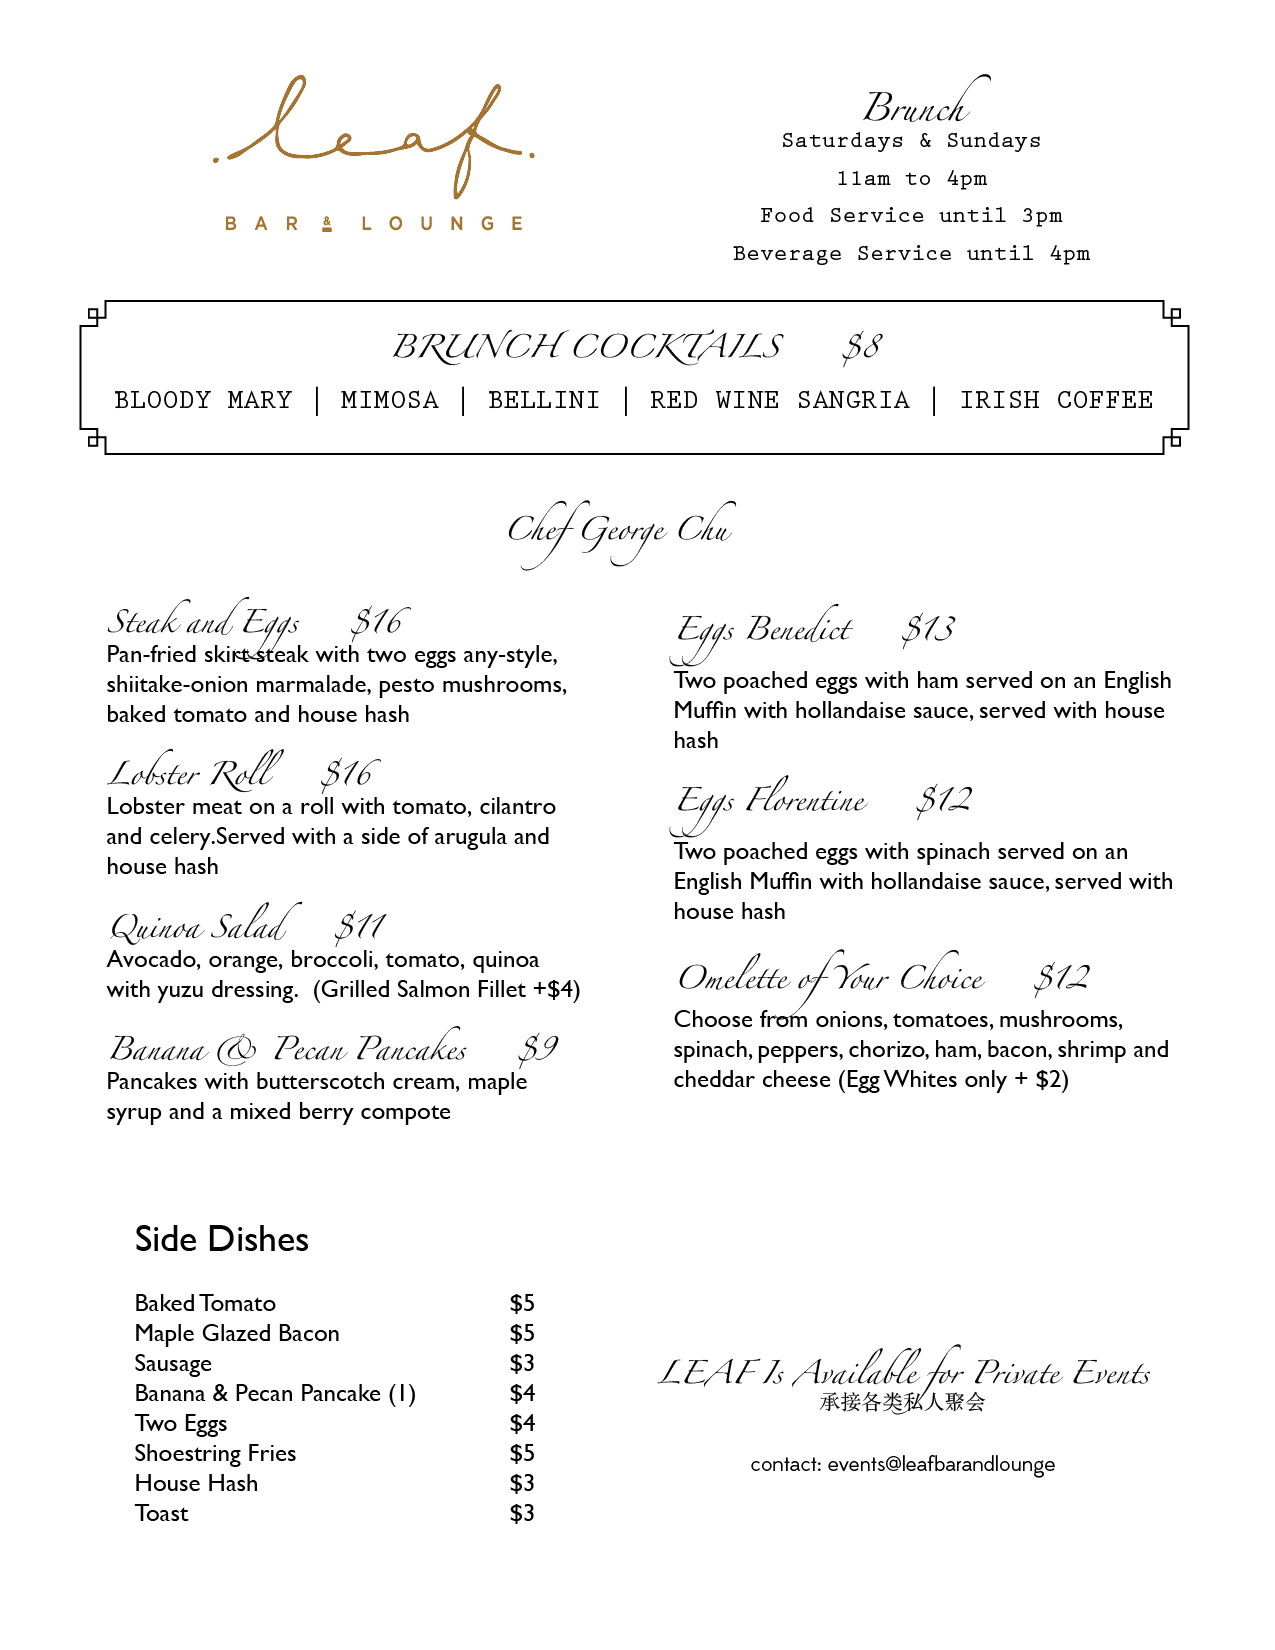 2019 Brunch Menu 3.28.19.jpg